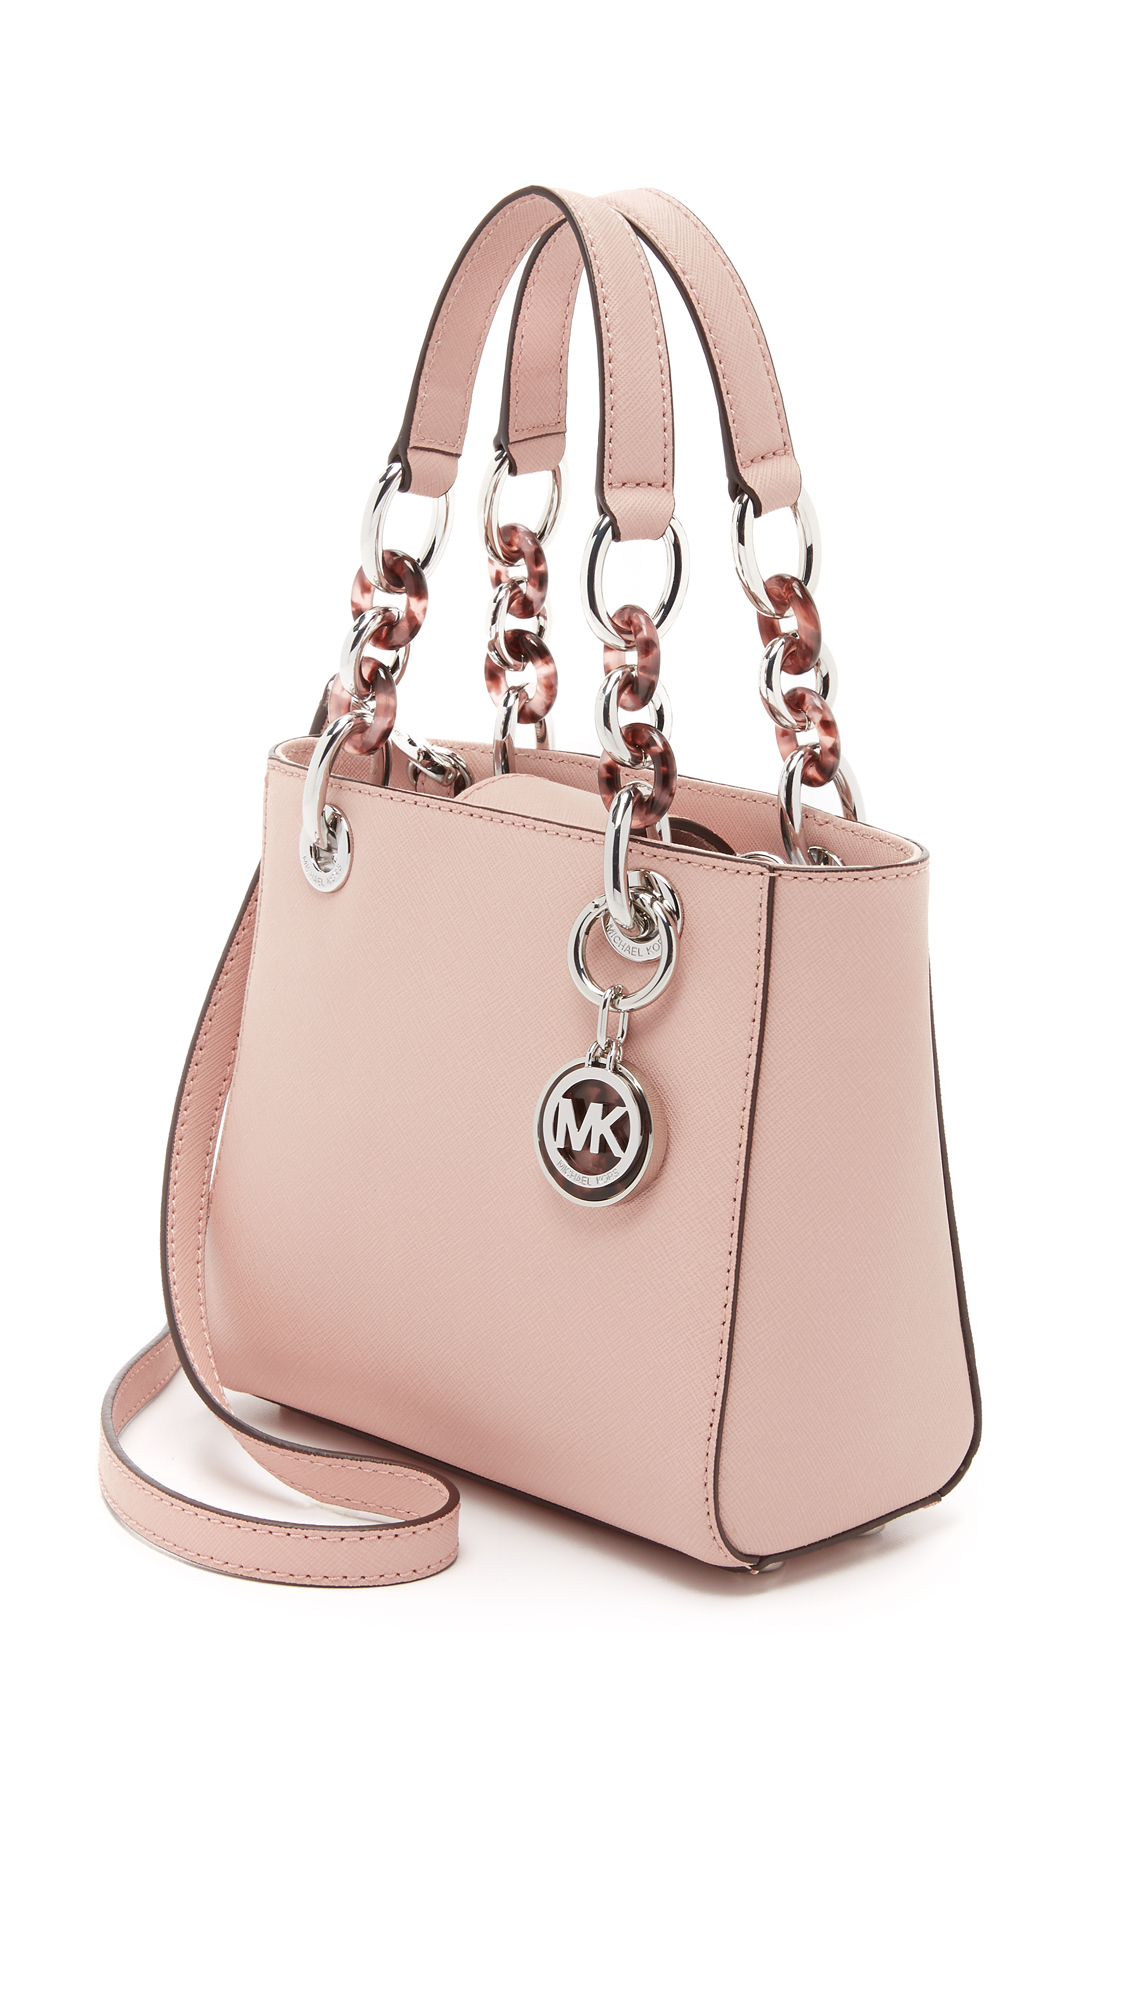 ed8544e262c417 ... closeout michael michael kors cynthia extra small satchel ballet in  pink lyst 504b7 996f0